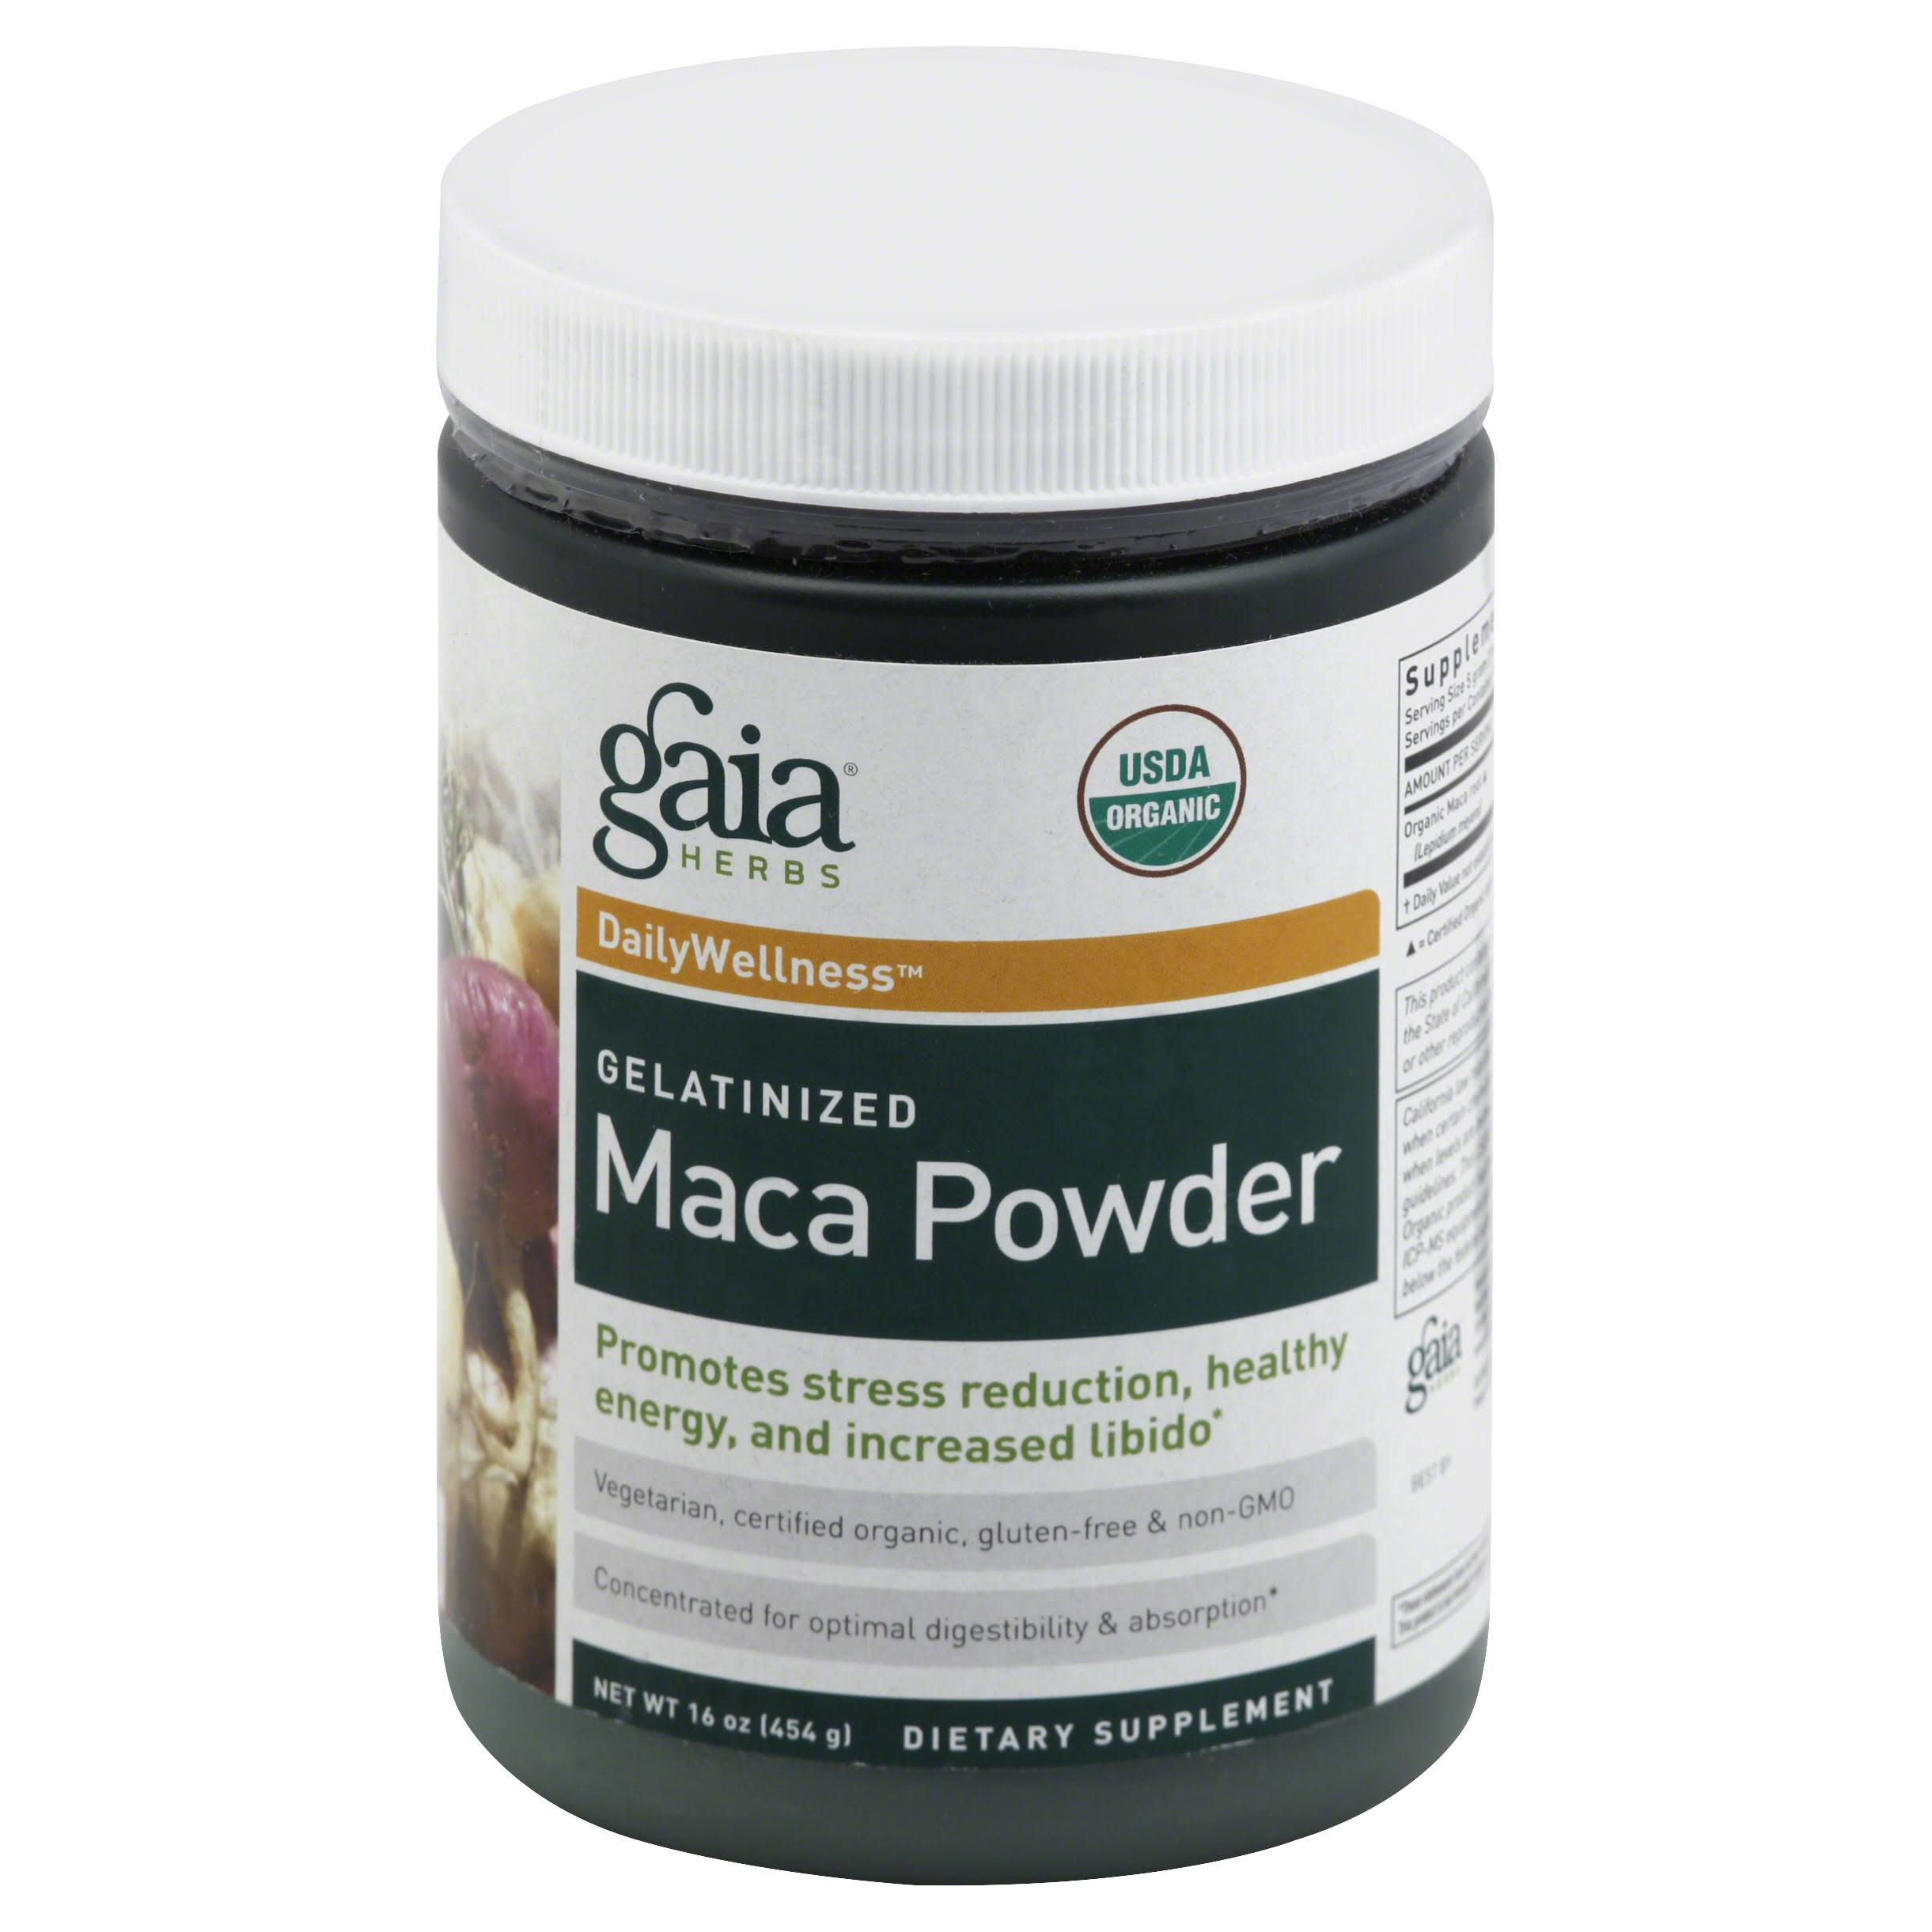 Gaia Herbs Gelatinized Maca Powder Dietary Supplement - 454g